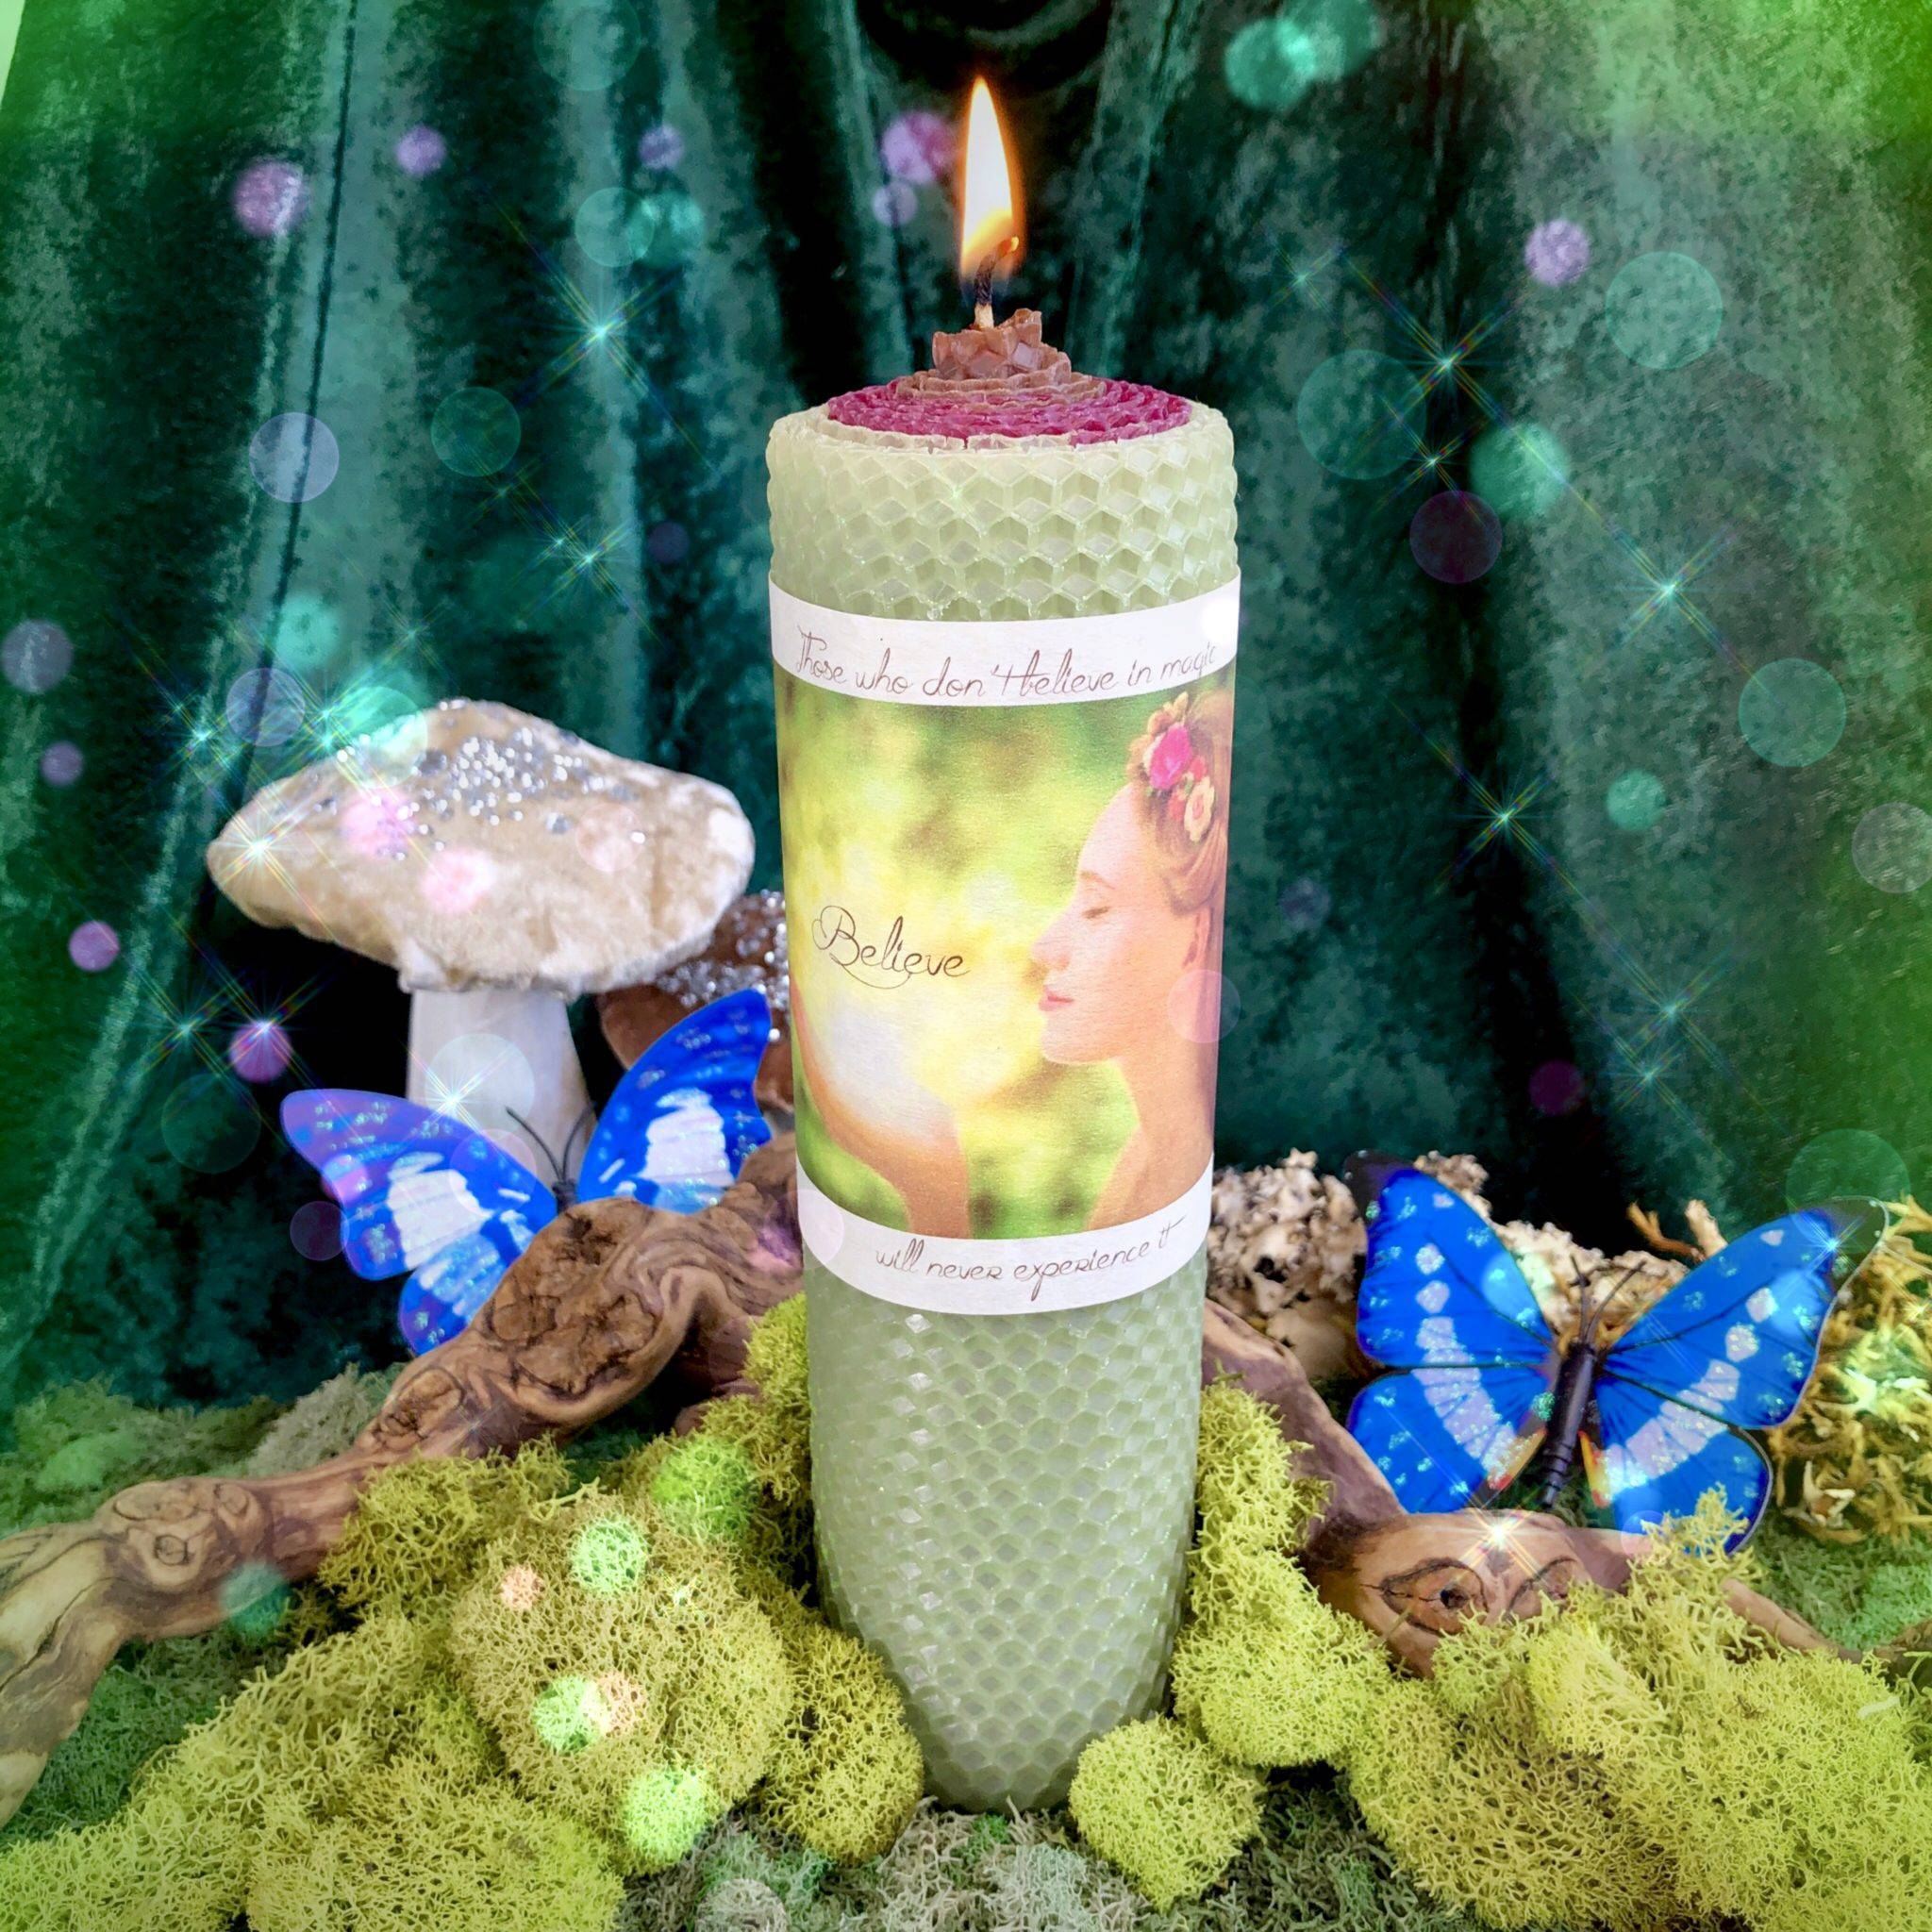 Believe in Magic Candle for manifesting what you desire